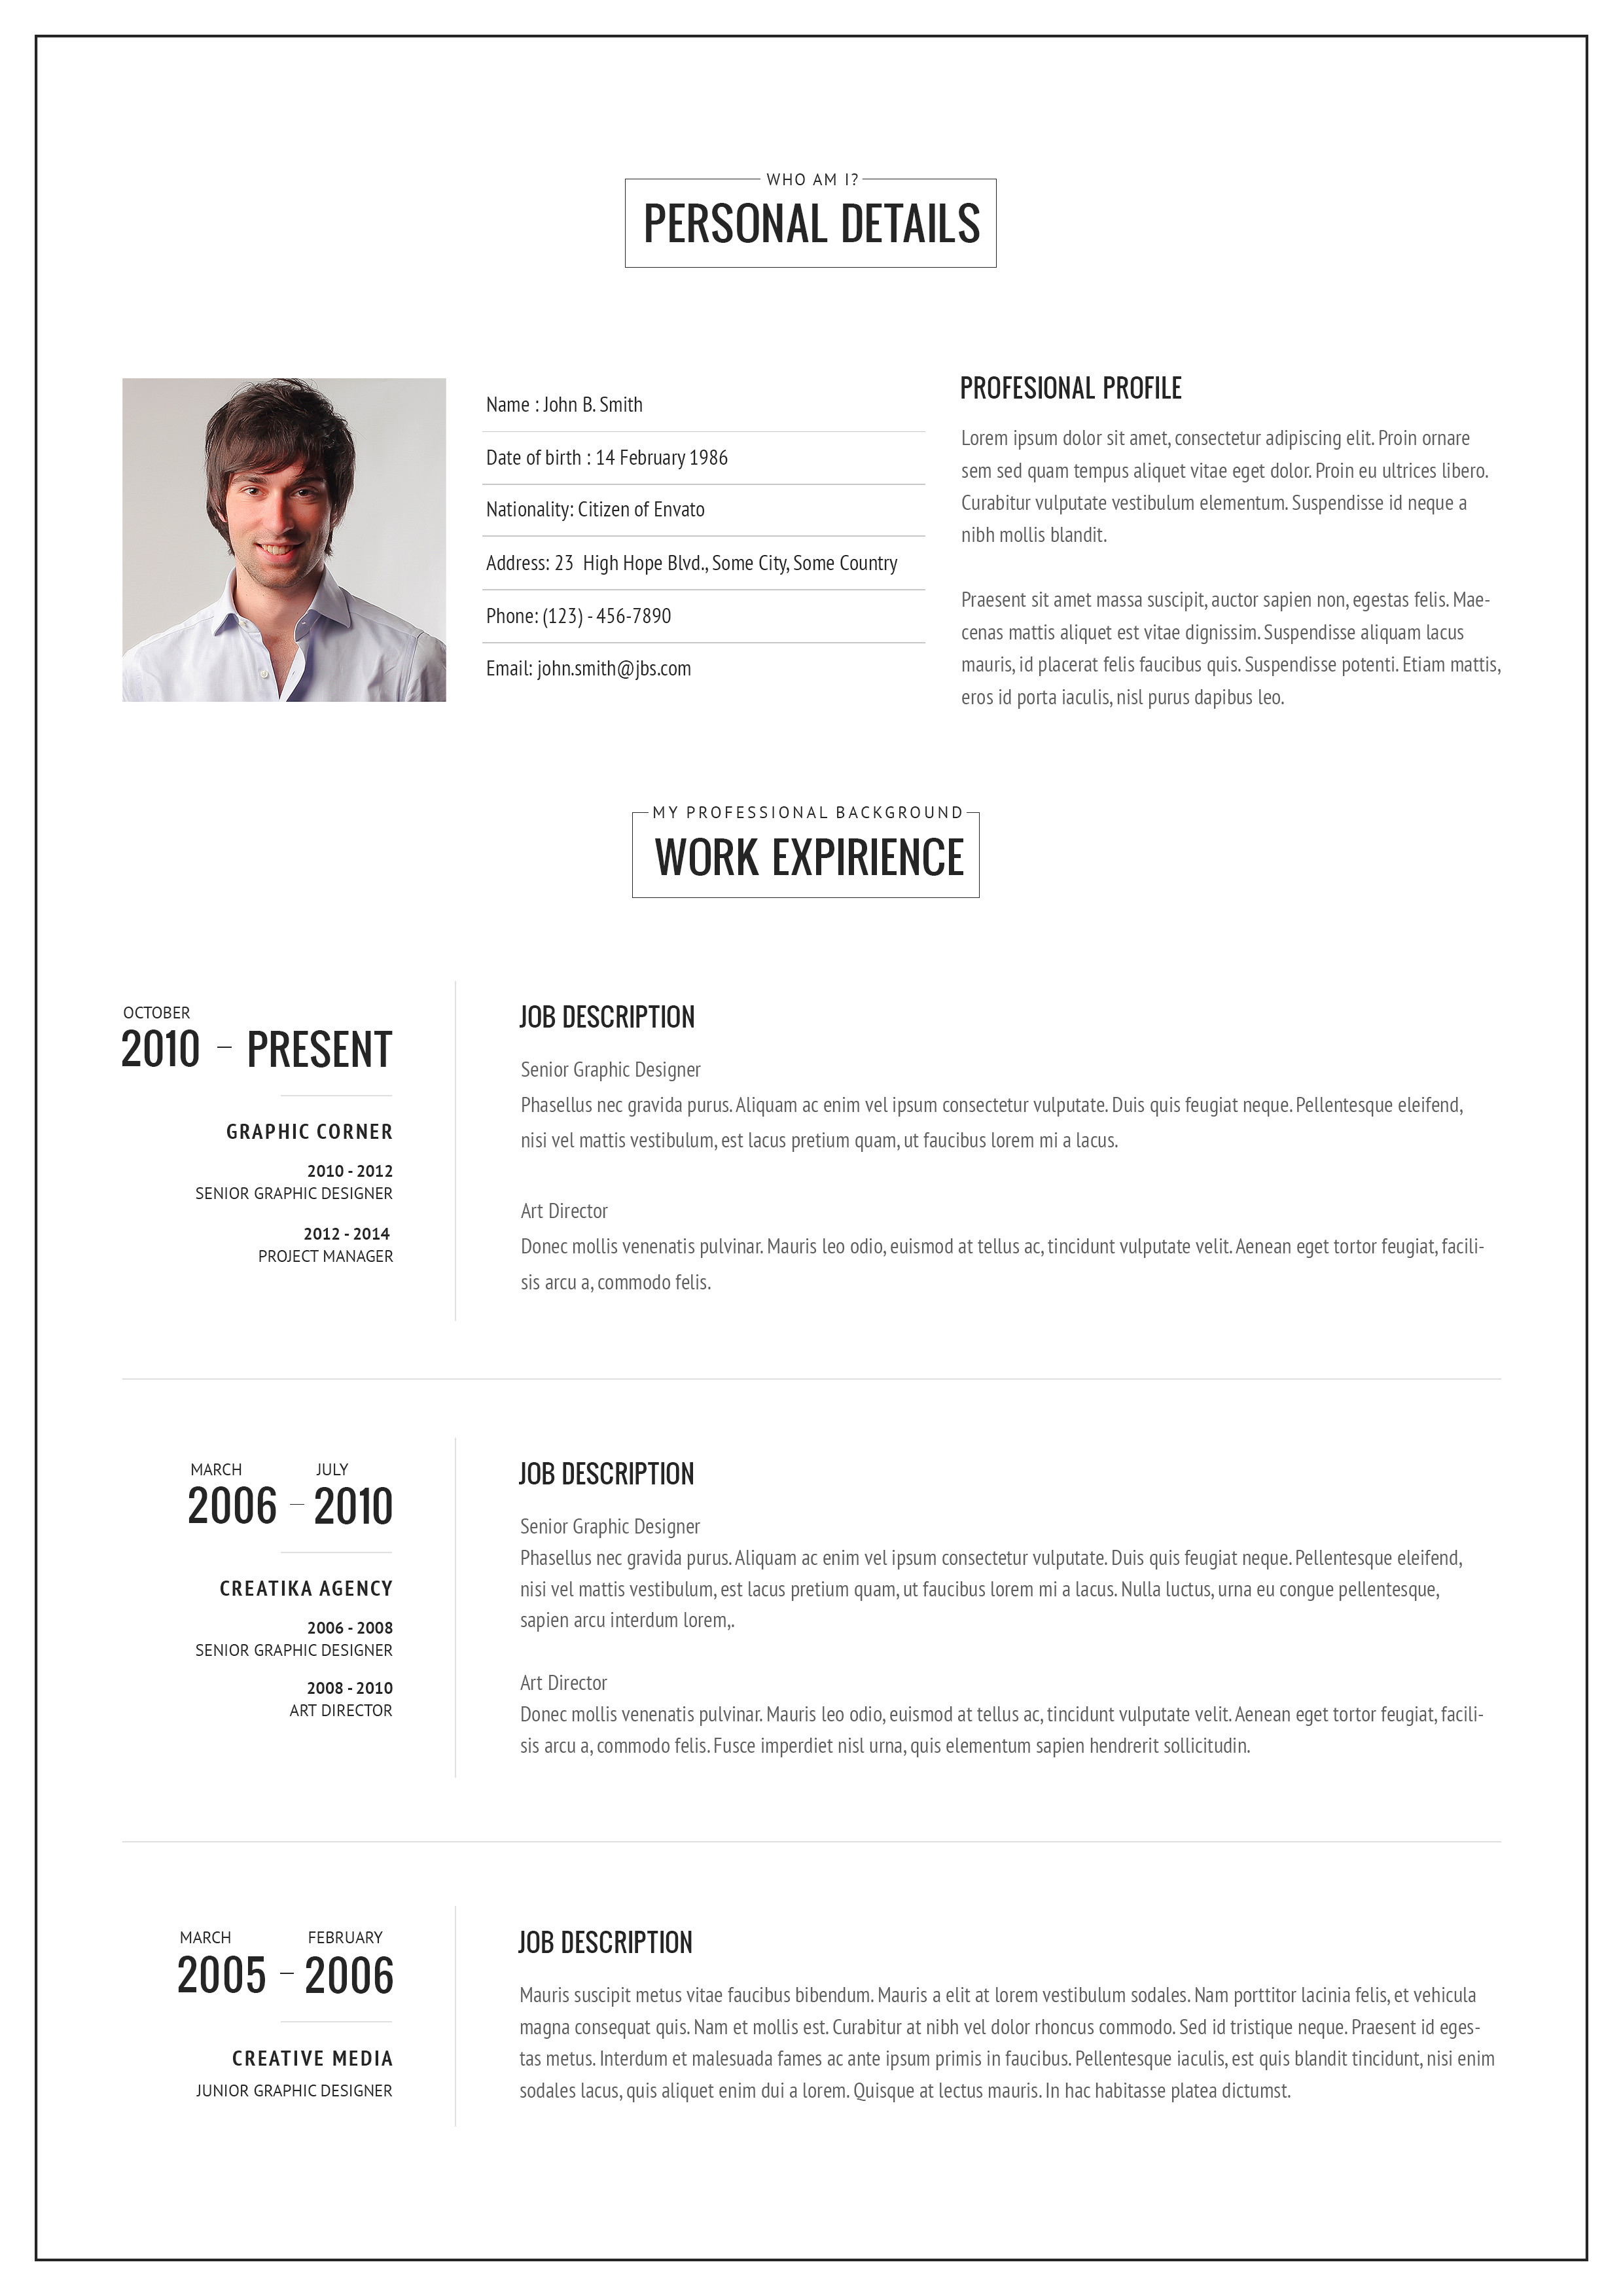 resume 1 Or 2 Page Resume 2 page resume template 2016 wolff updated 1 or 45 best images about modern for word and pages 3